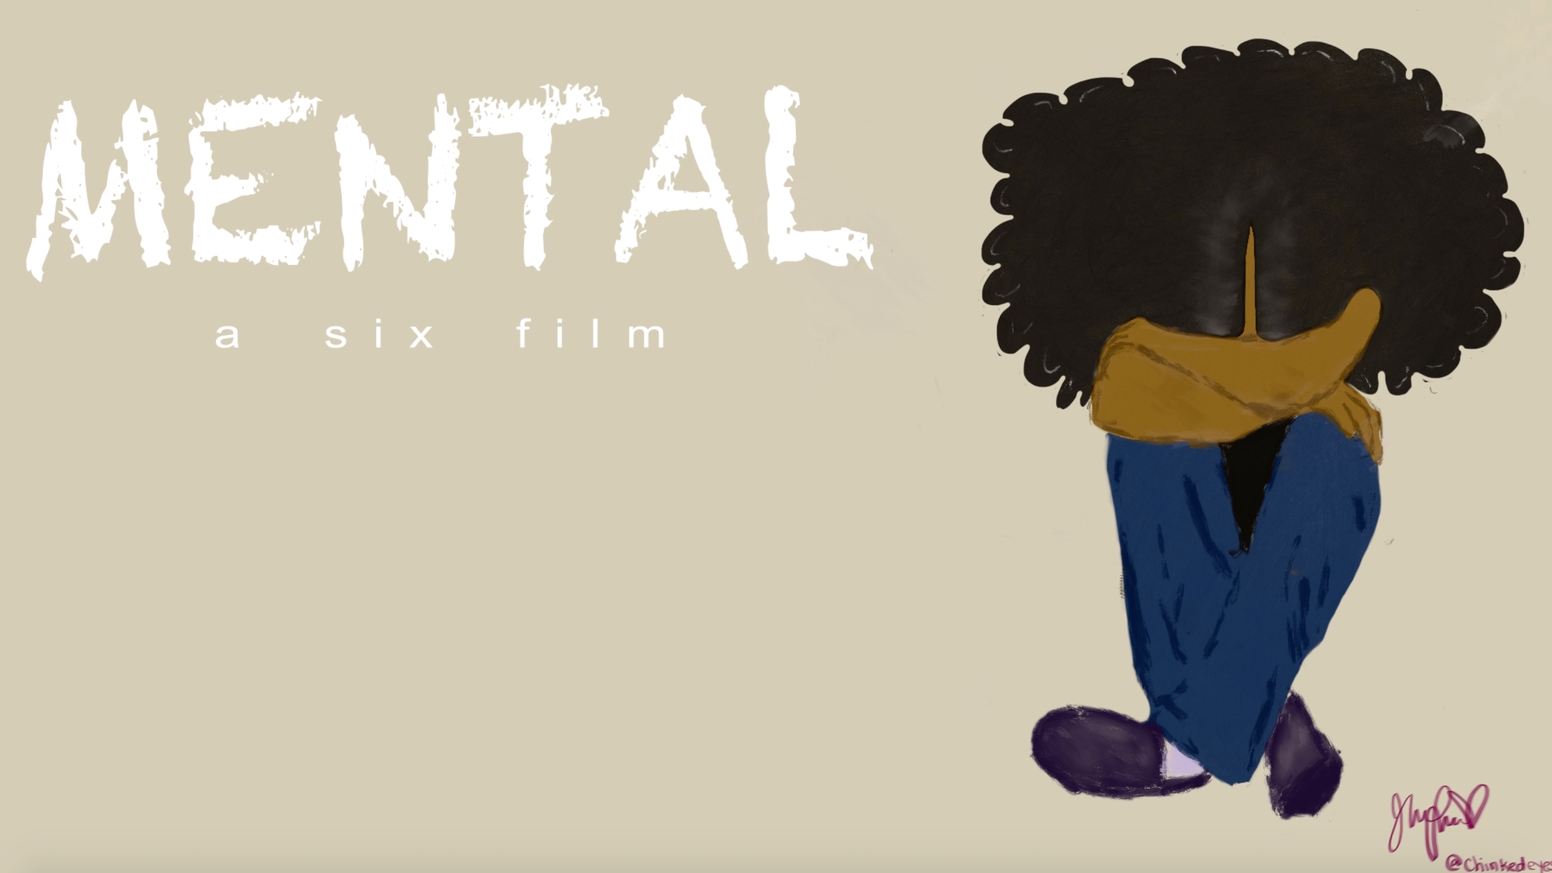 A film on the taboo, but important topic in the Black community, mental health. Let's break the stigma and spread awareness.